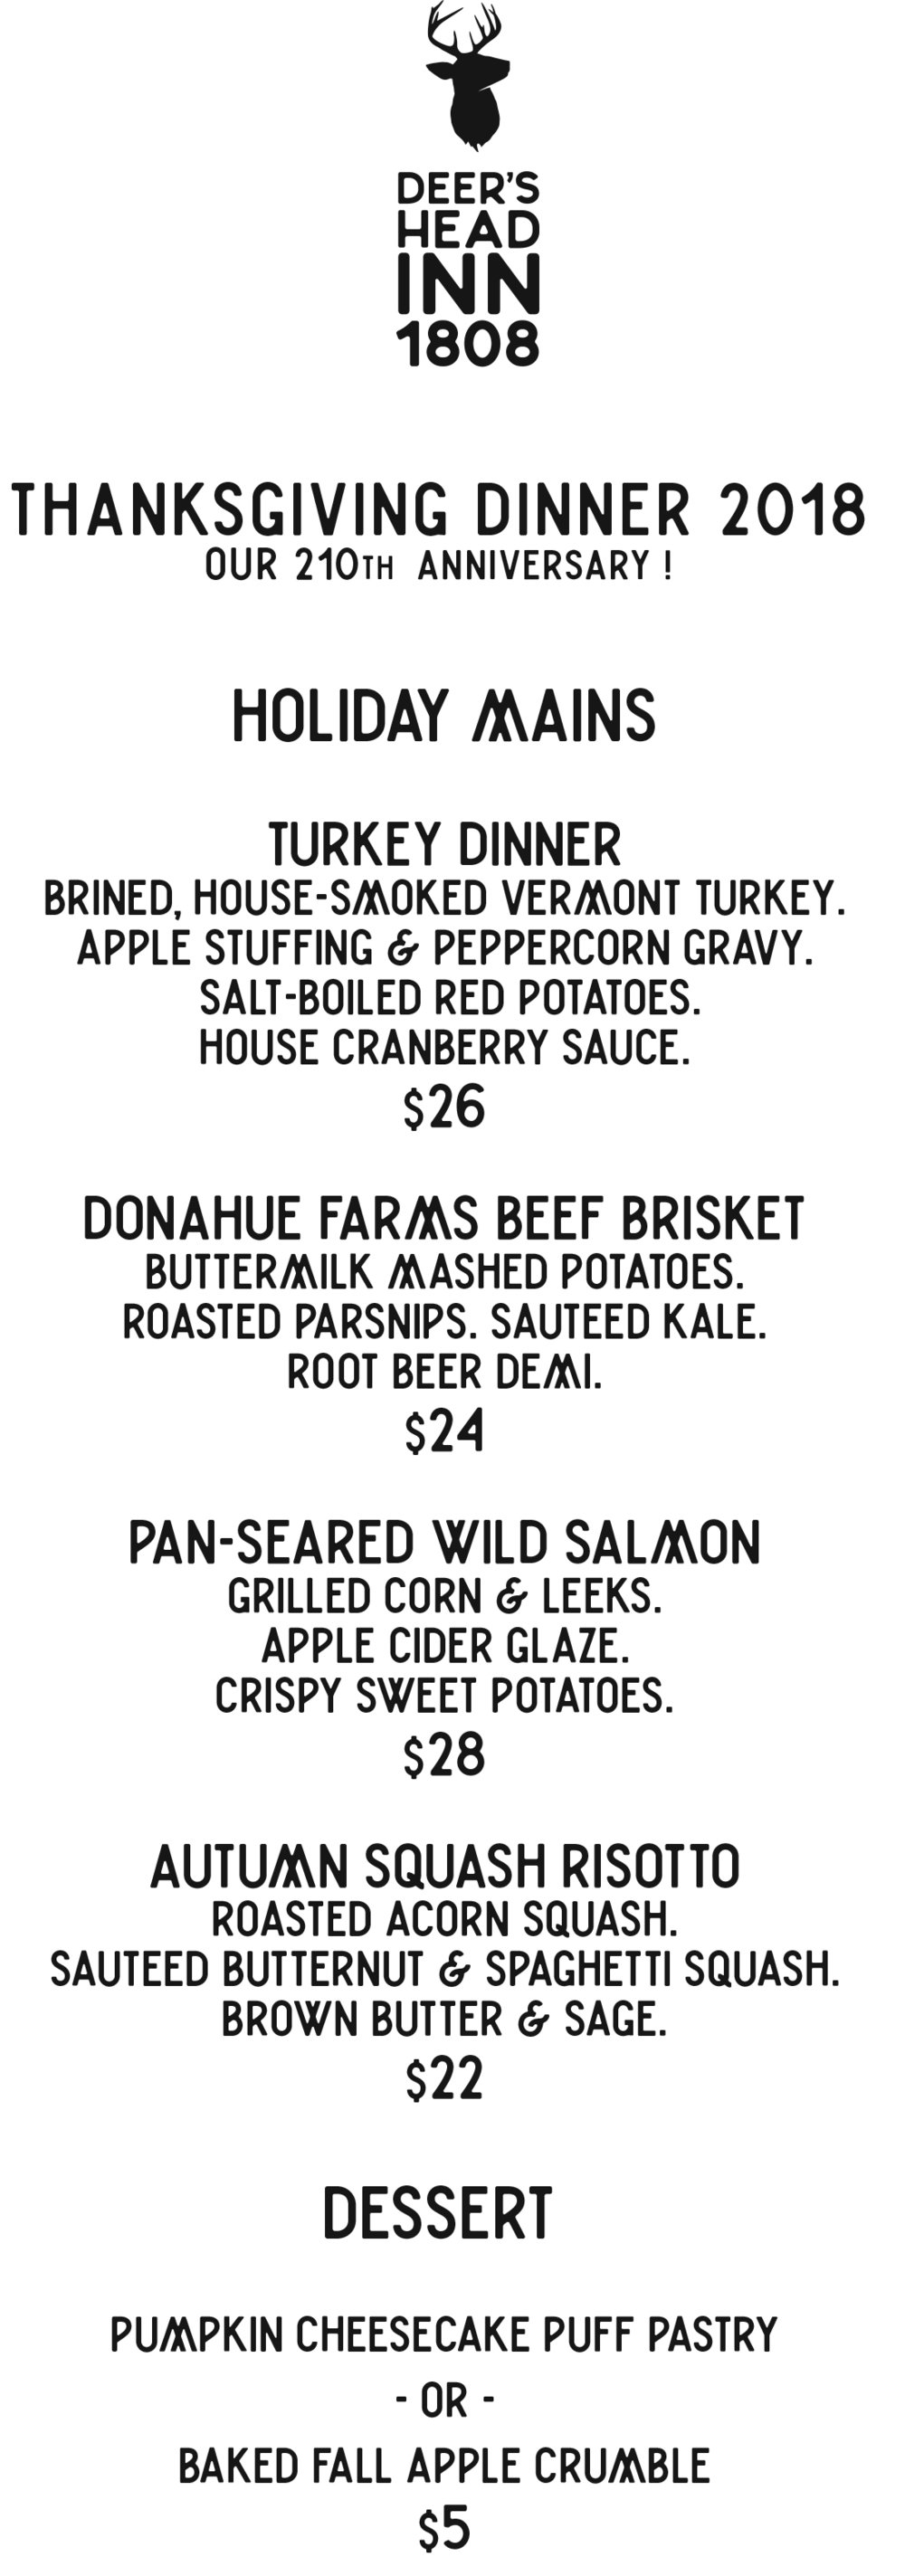 Thanksgiving 2018 Teaser Menu.jpg